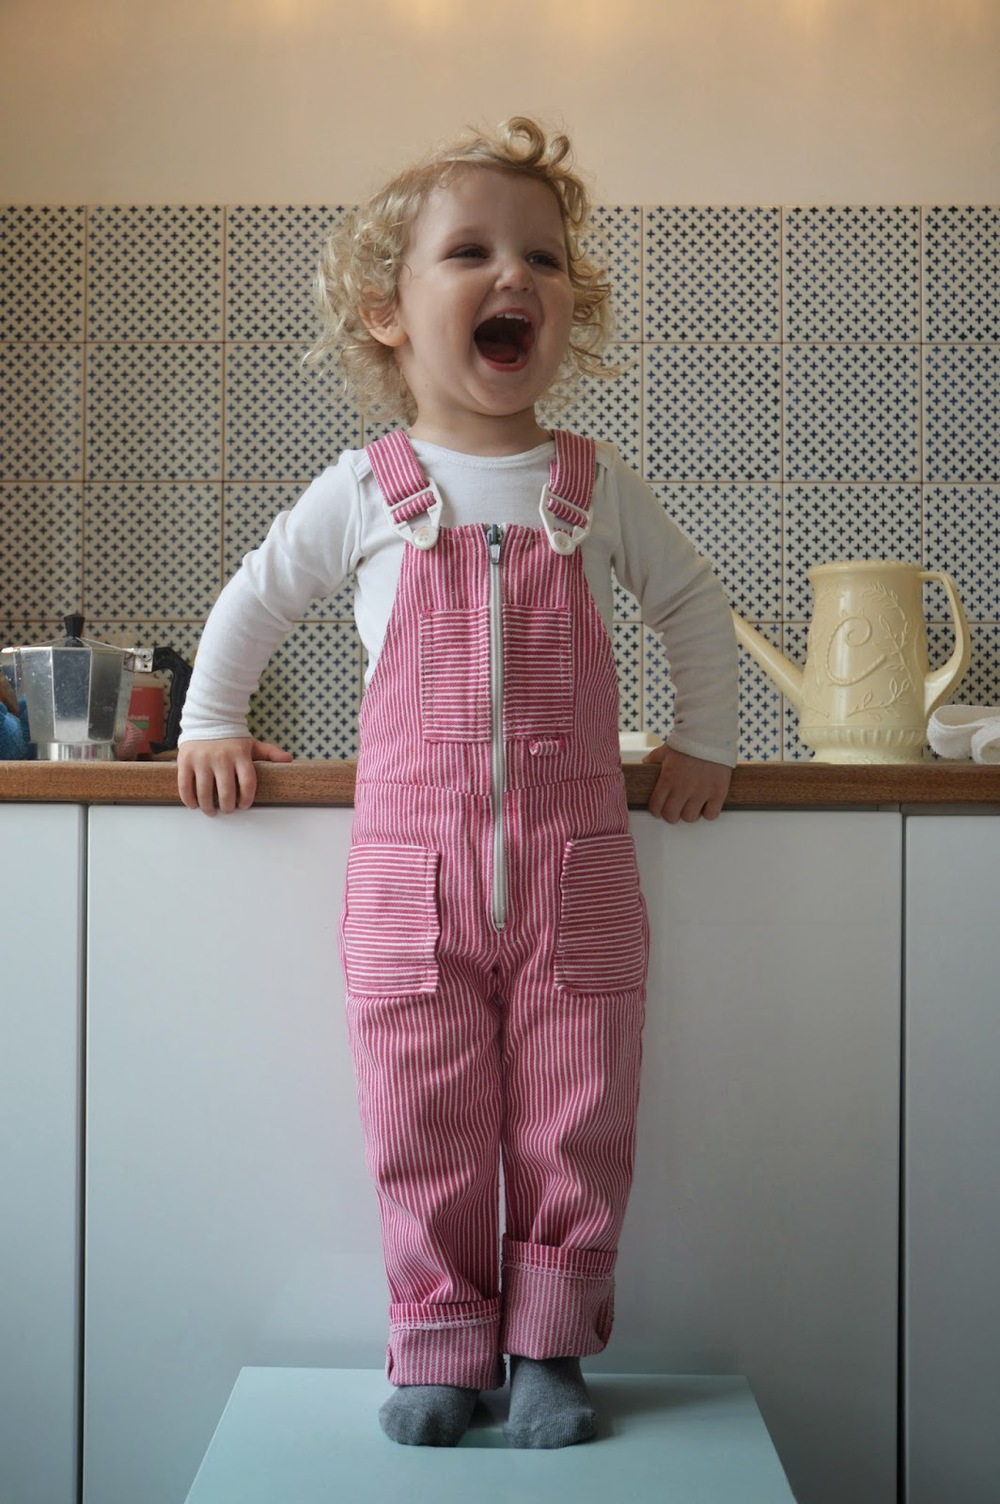 Quite happy with her new dungarees.